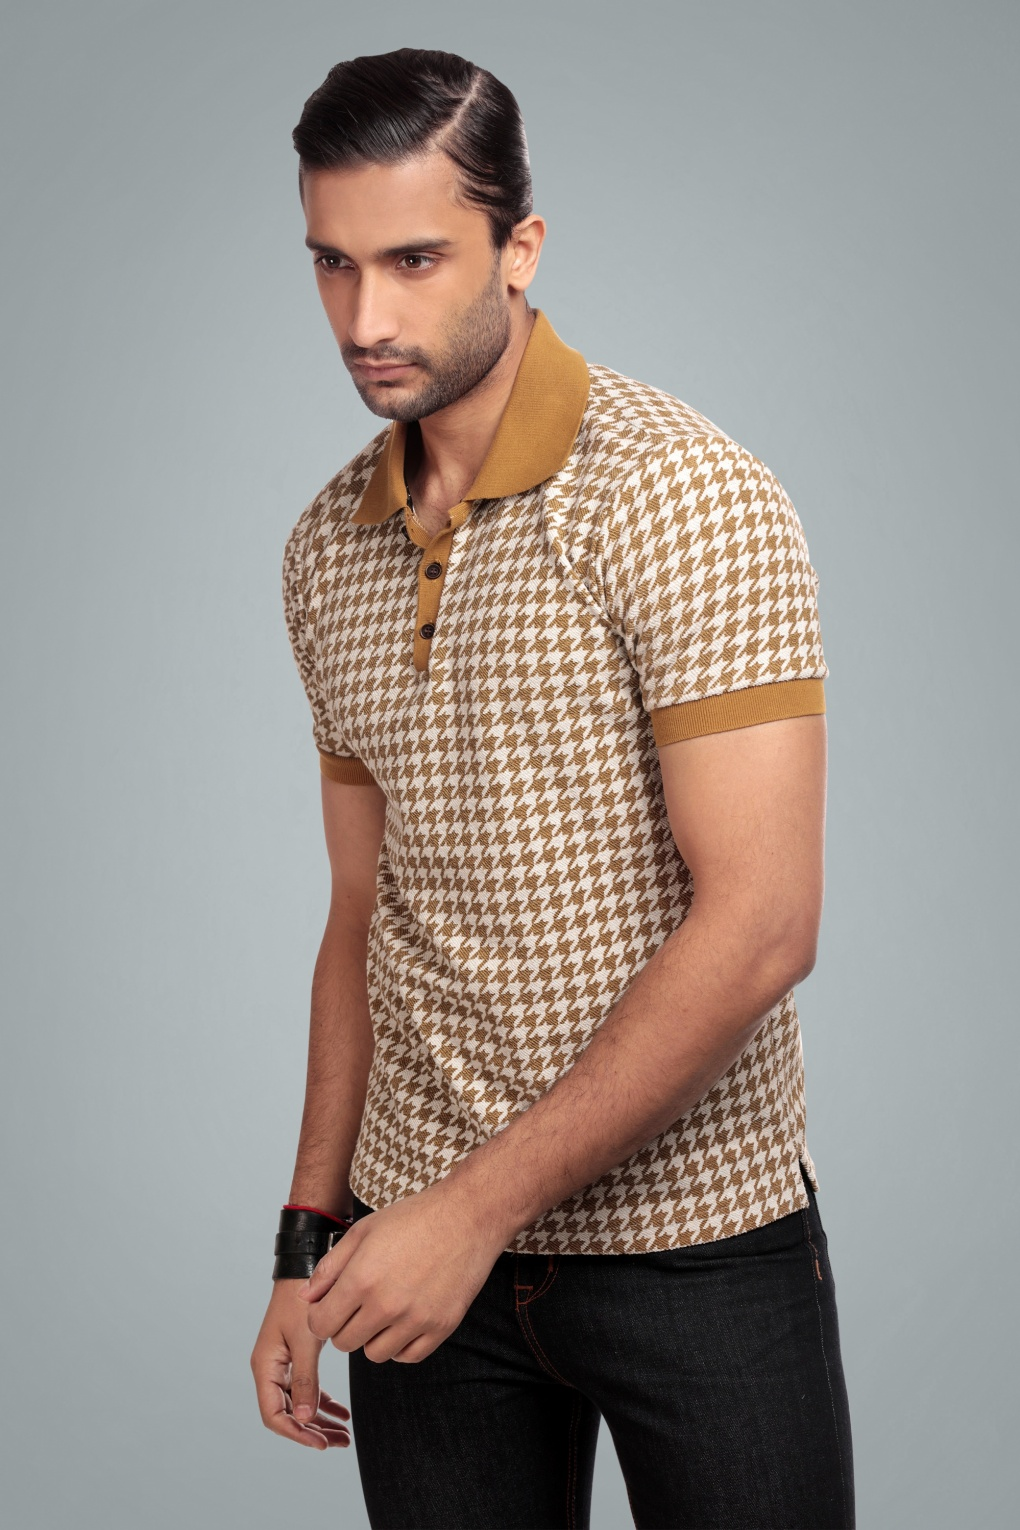 1950s Men's Shirt Styles – Dress Shirts to Casual Pullovers 50s Pablo Dogtooth Polo Shirt in Camel £45.57 AT vintagedancer.com